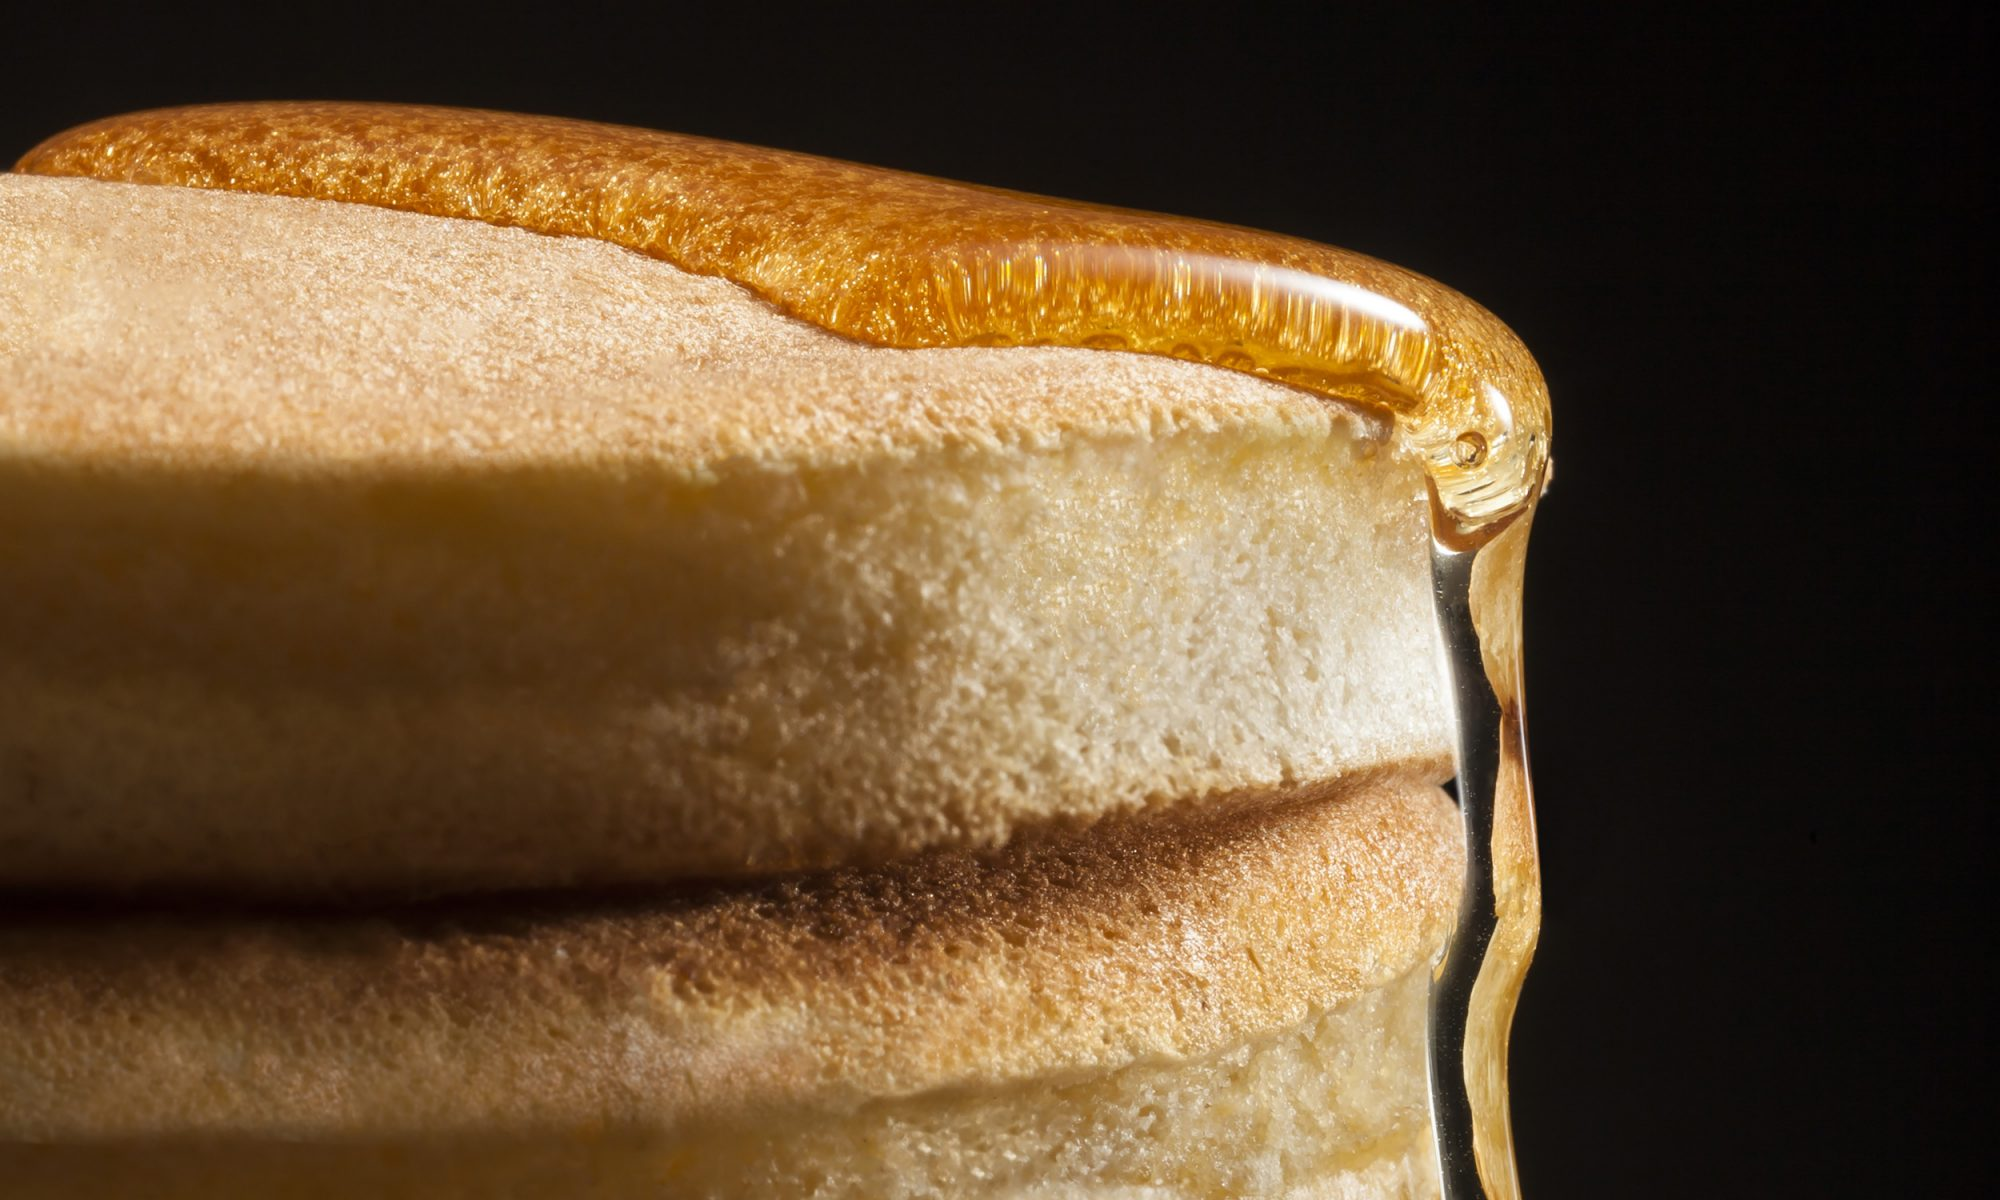 EC: Super-Fluffy Japanese Pancakes Are Within Your Reach